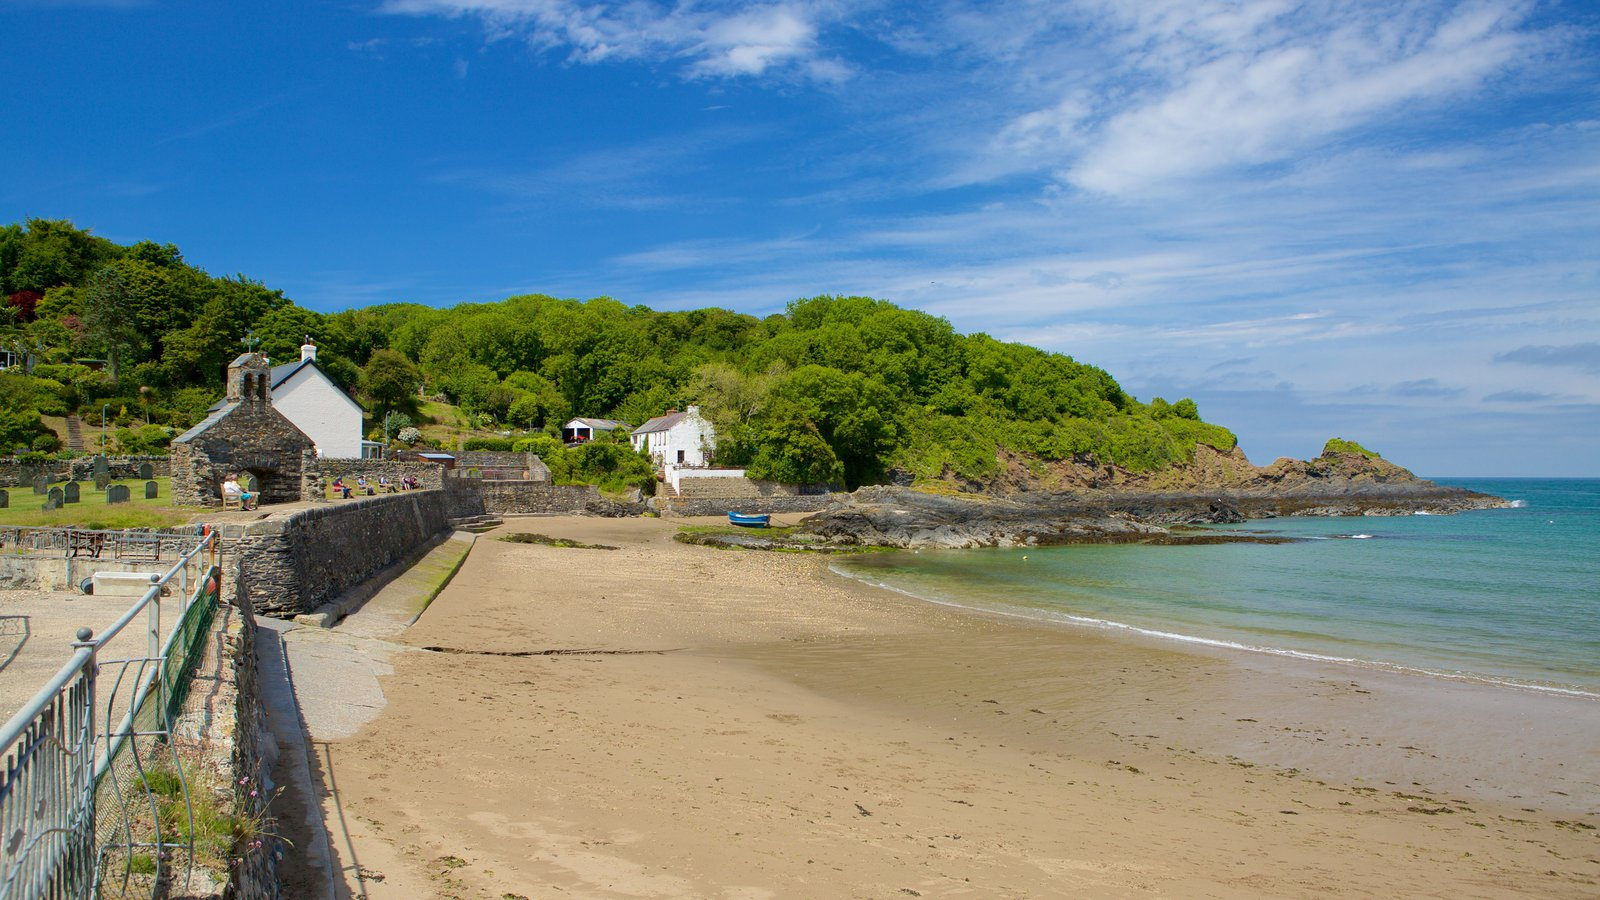 Pembrokeshire Coast National Park which includes a beach and a coastal town